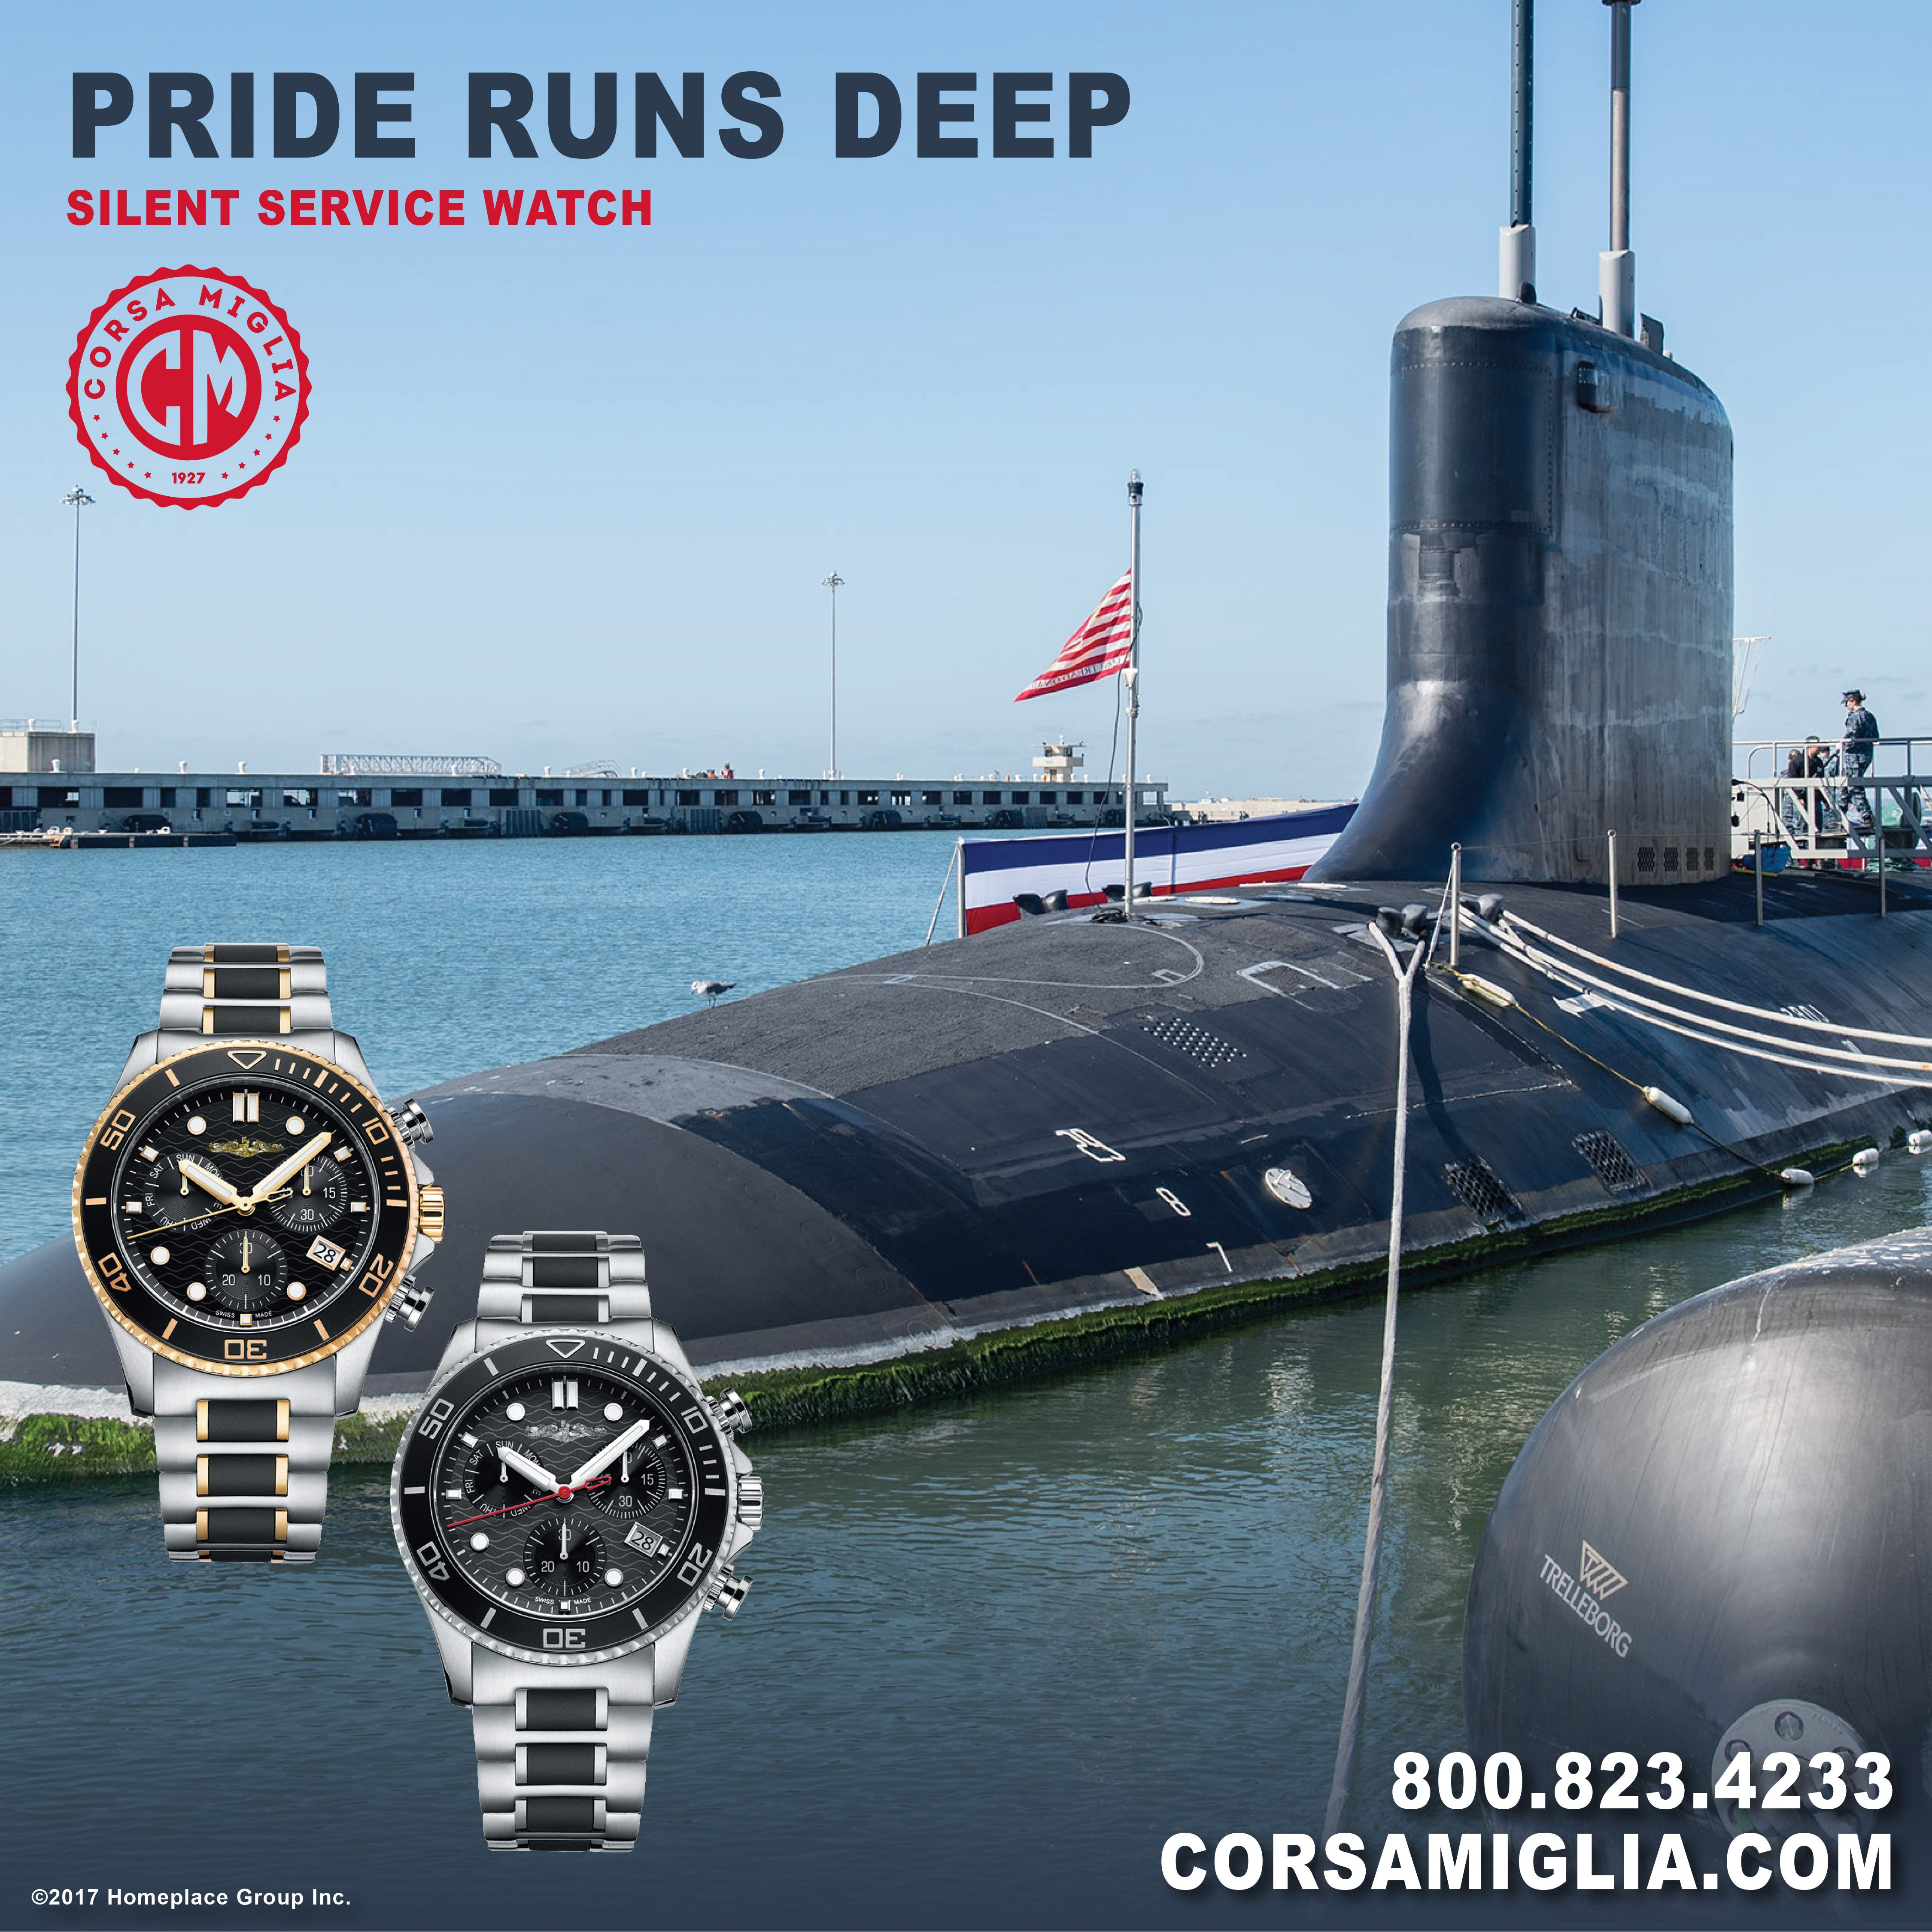 Today Is Navy Day It Was Originally Sponsored By The Navy League 1922 And Is Designed To Give Recognition To The Naval Service Th Navy Day Submarines Service